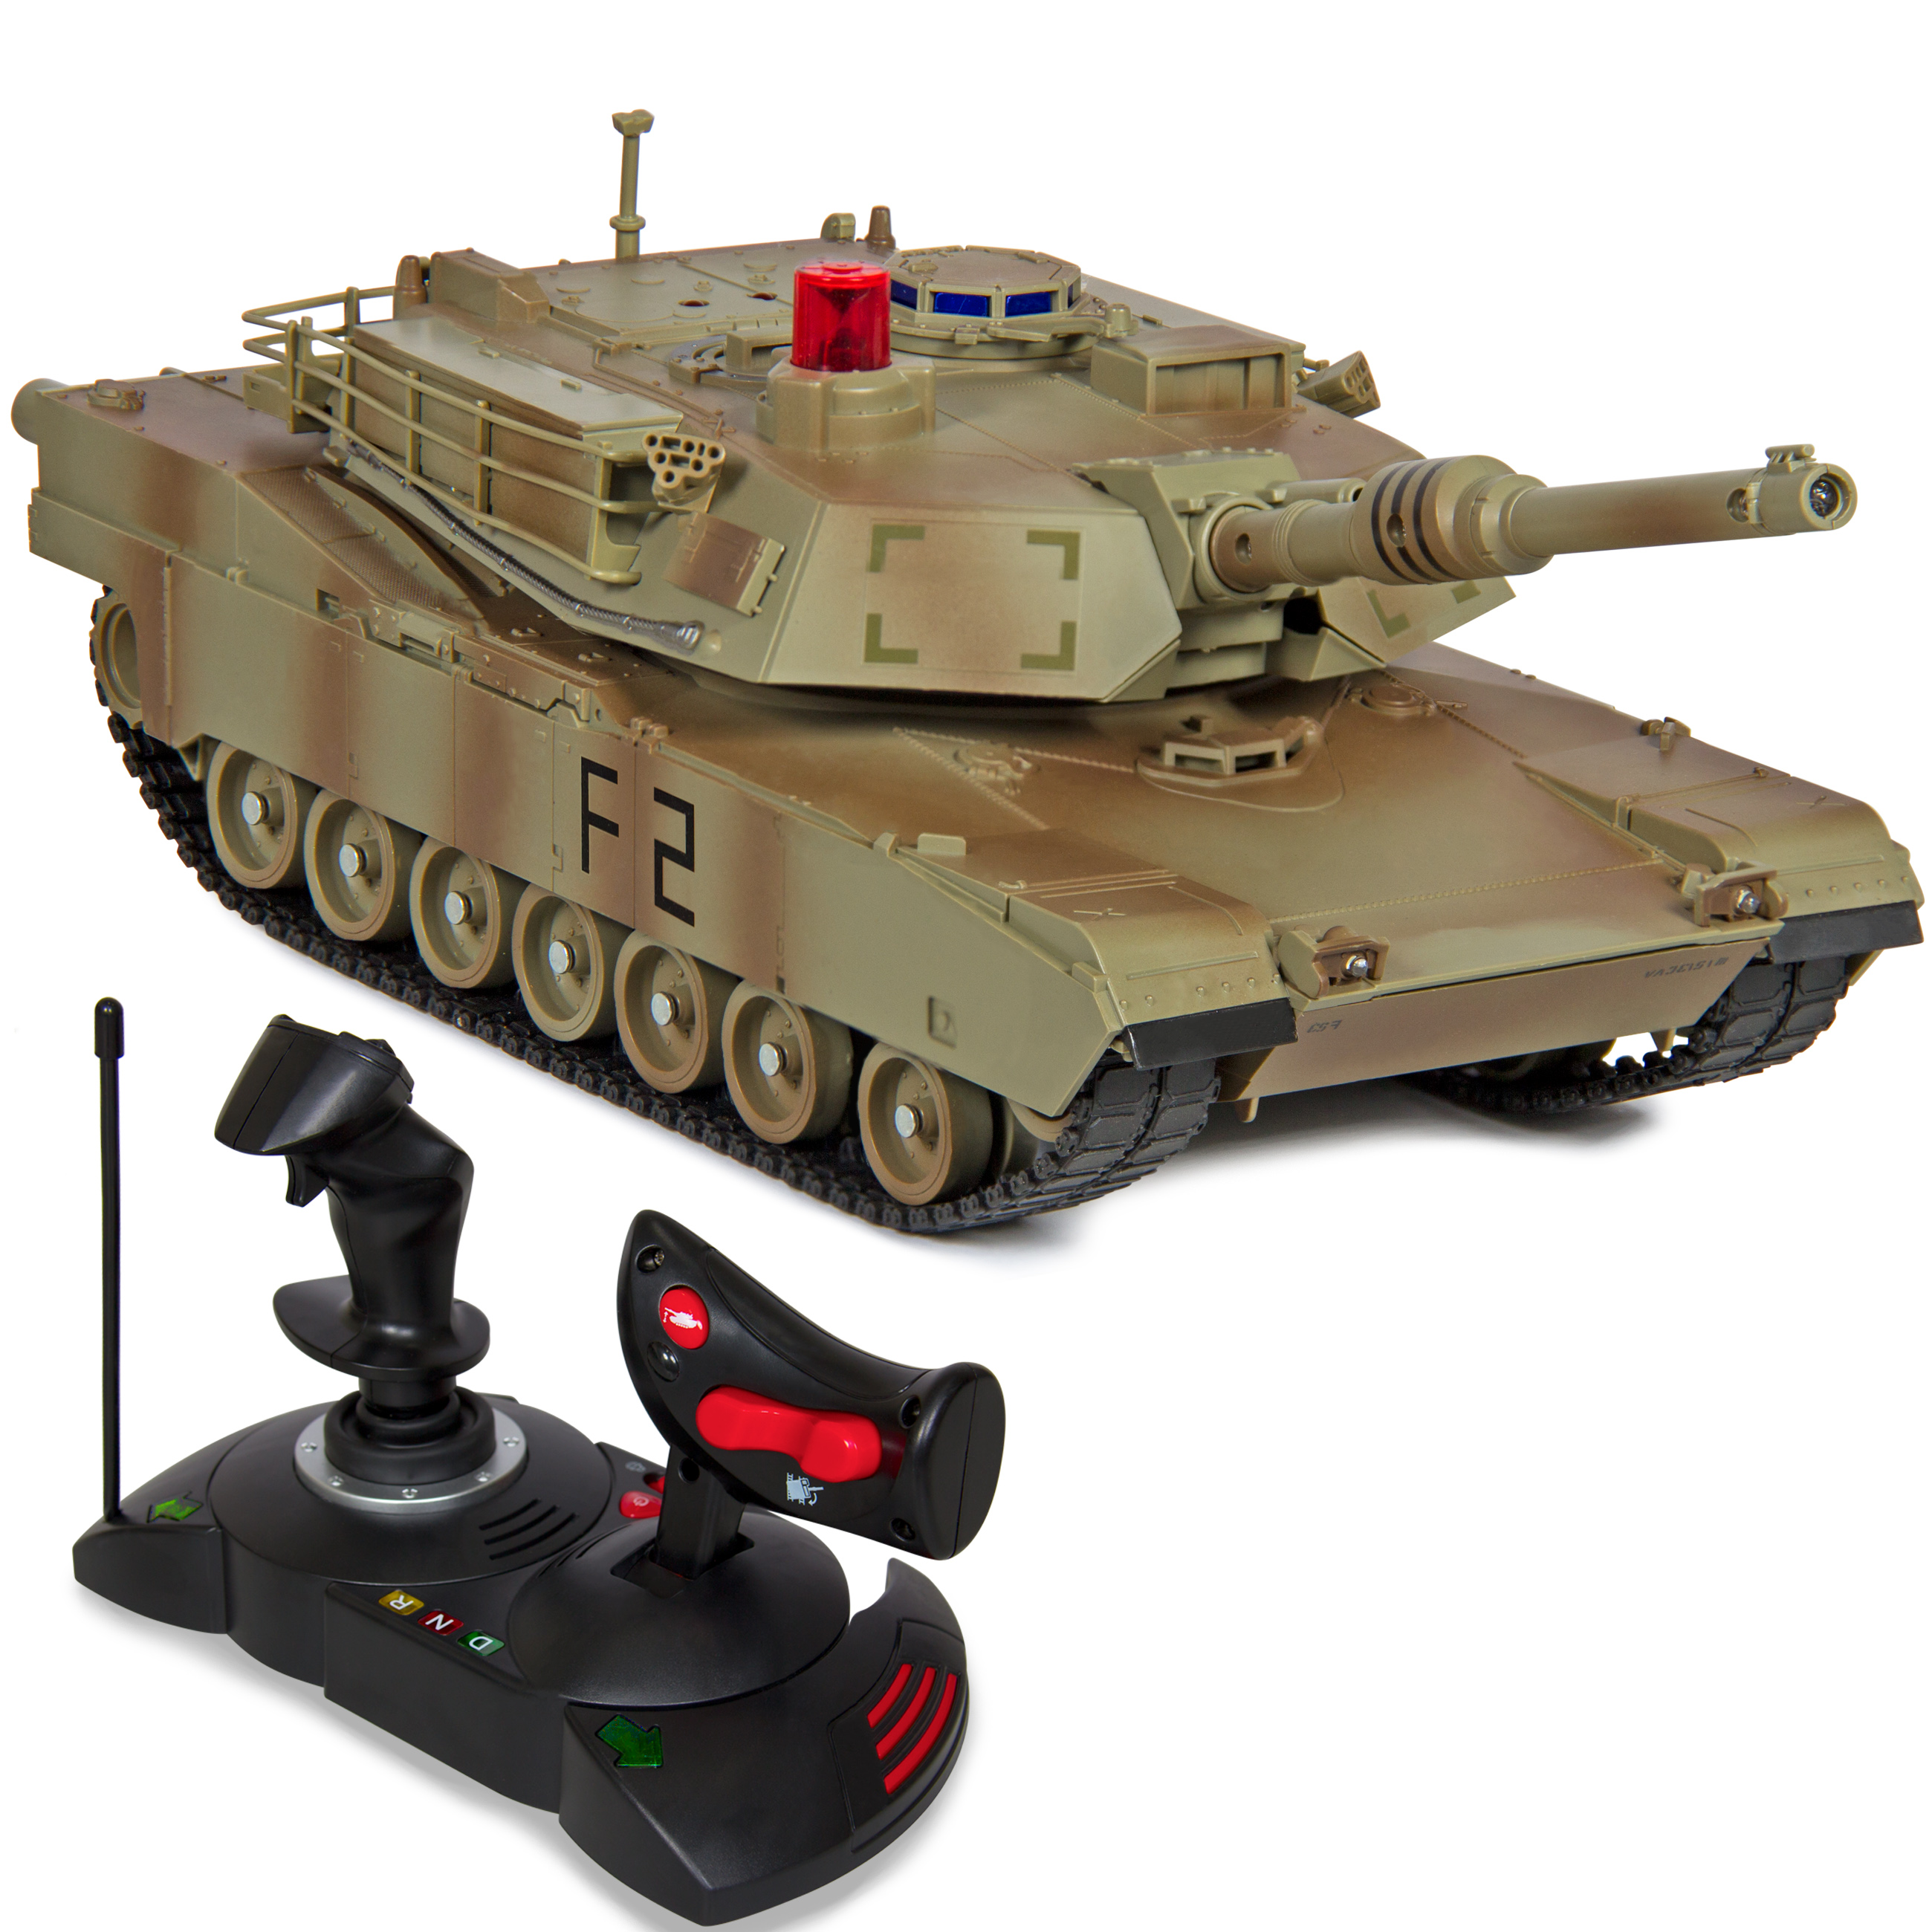 Best Choice Products 1 14 Scale RC Military Tank Gravity Sensor Remote Control Car- Green Camouflage by